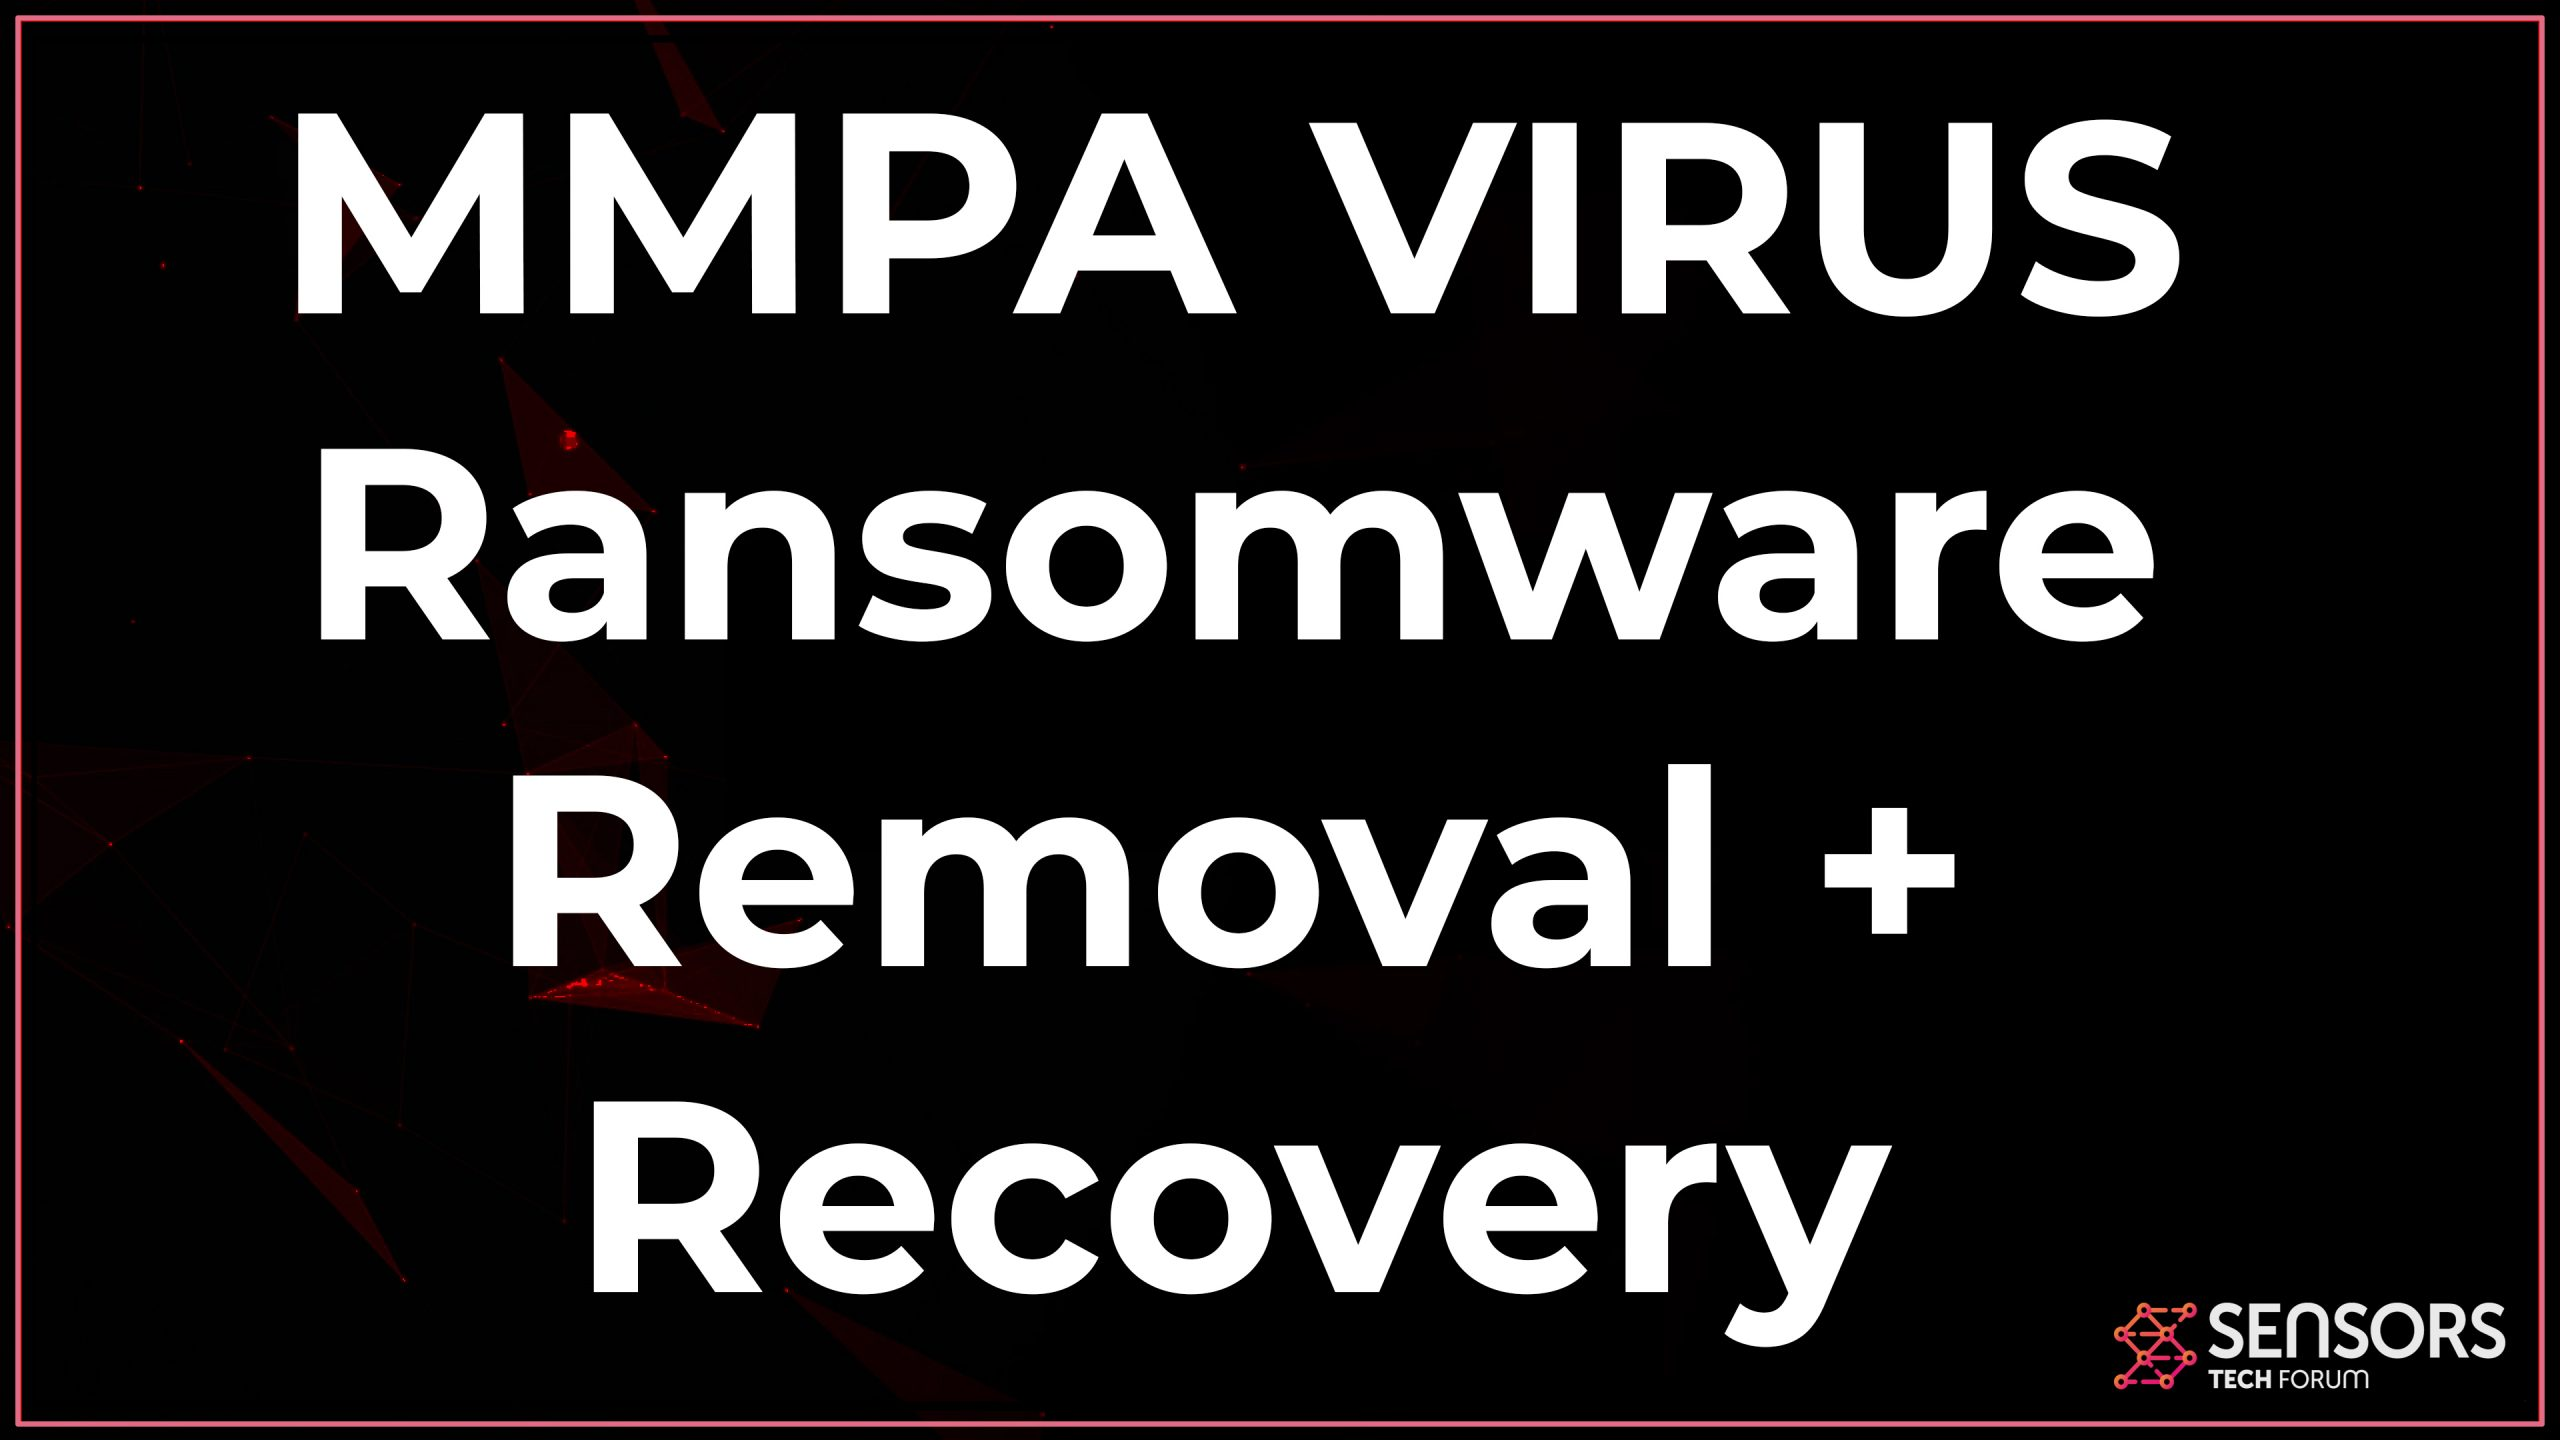 delete Mmpa ransomware infection restore files